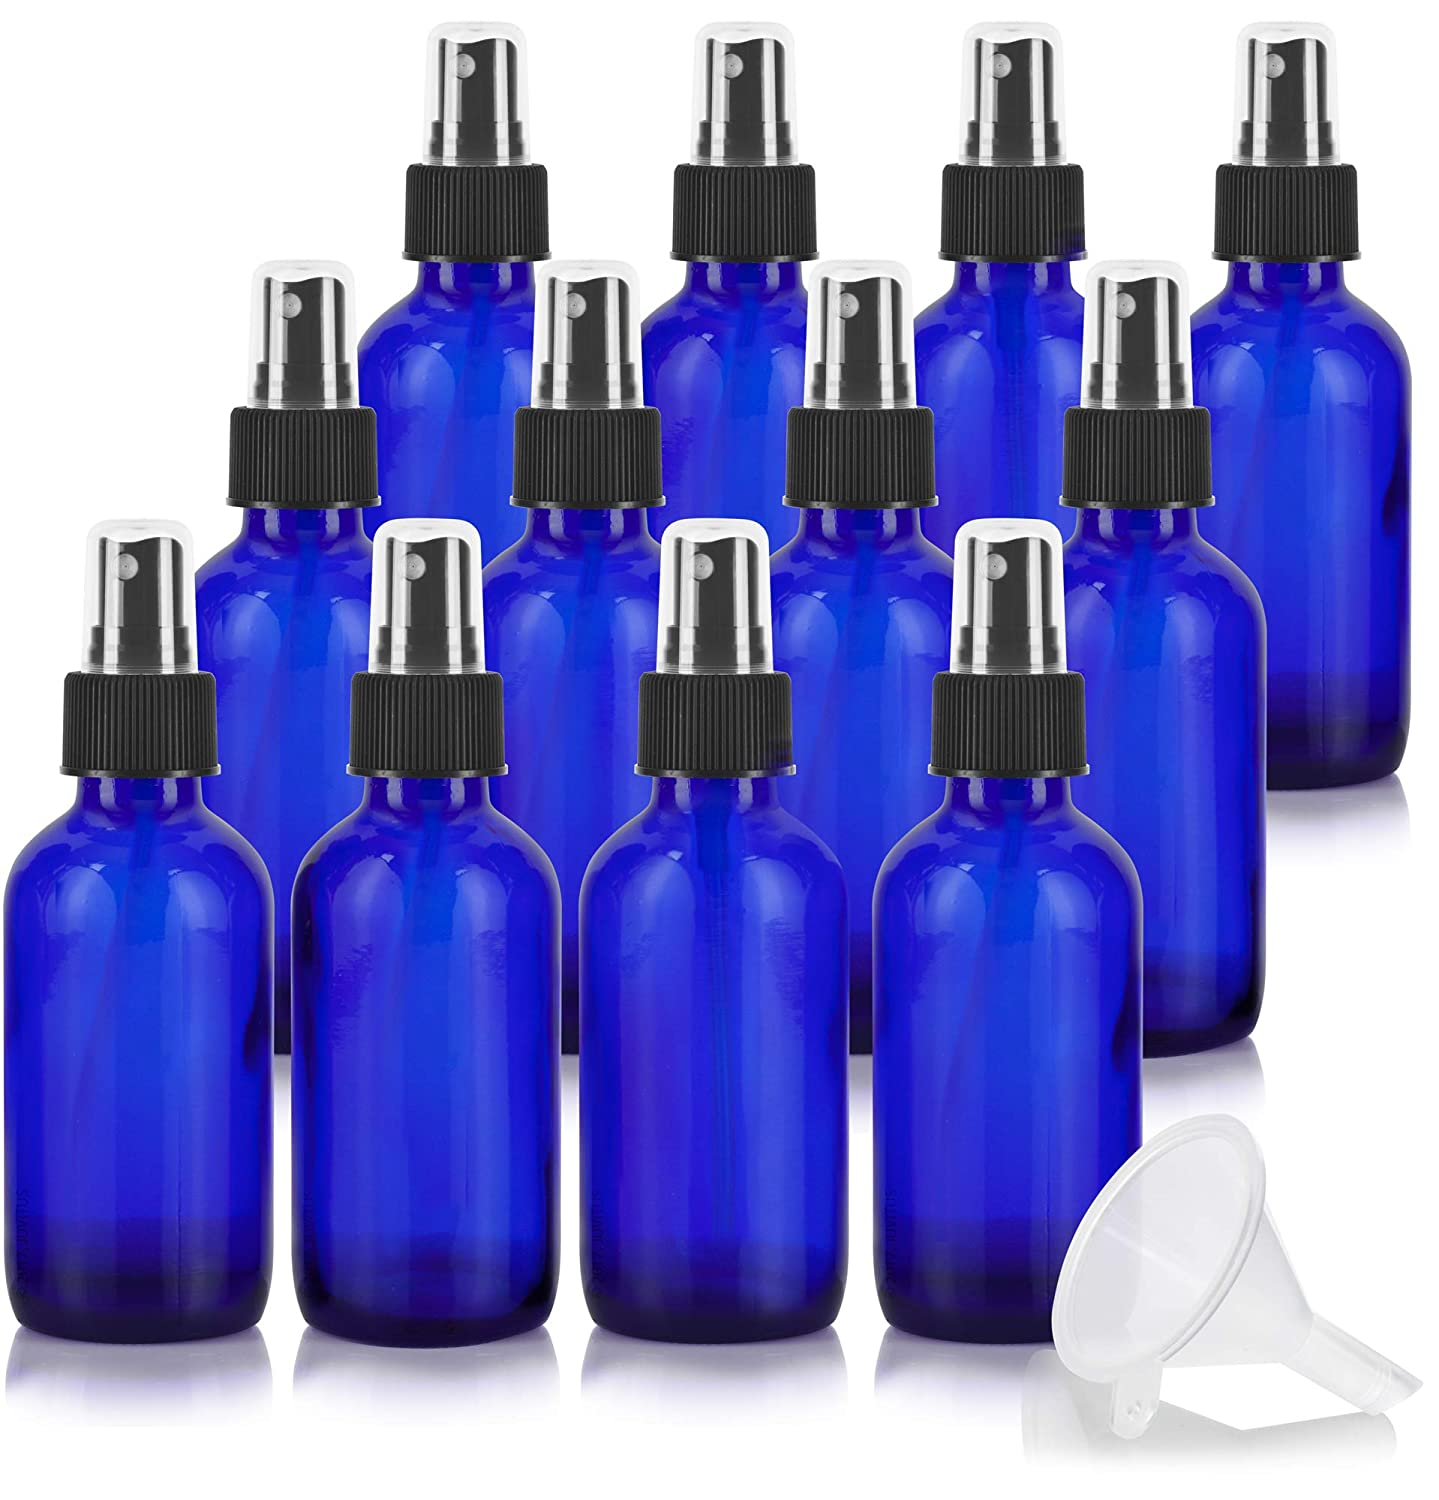 4 oz Cobalt Blue Glass Boston Round Fine Mist Spray Bottle 12 Pack Funnel for Essential Oils, Aromatherapy, Food Grade, bpa Free